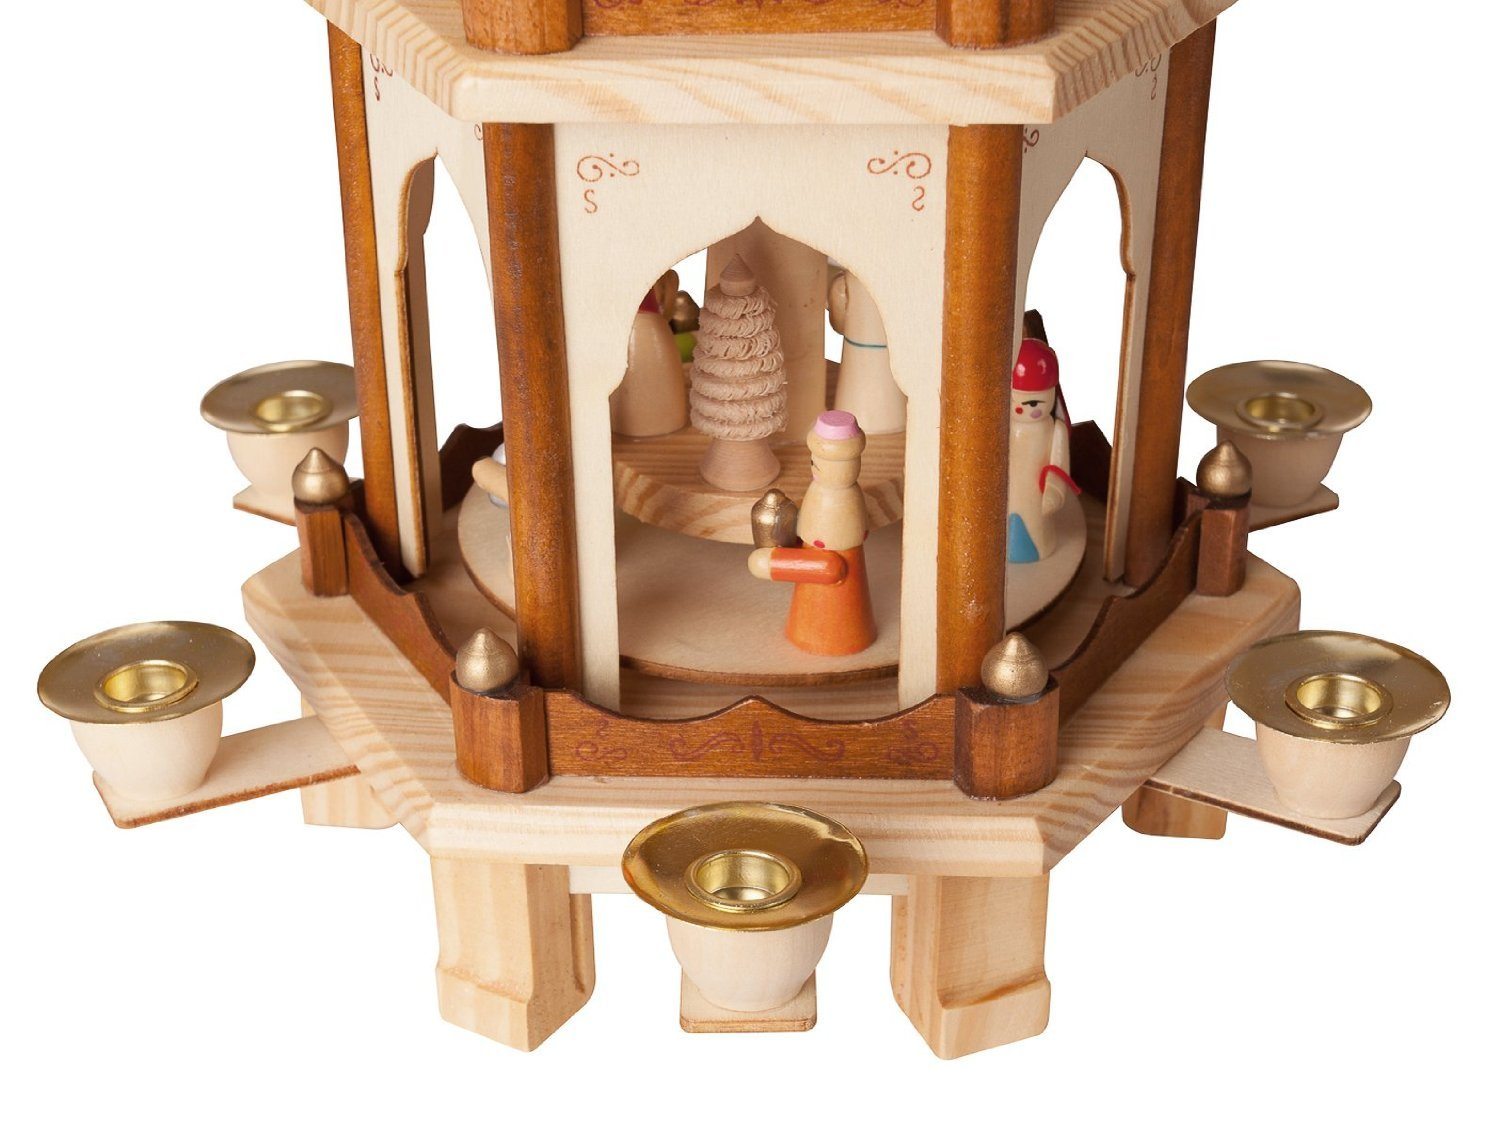 BRUBAKER Christmas Pyramid - 24 Inches - 4 Tier Carousel with 6 Candle Holder and Hand Painted Figurines - Designed in GERMANY - Nativity Set, Decoration by BRUBAKER (Image #6)